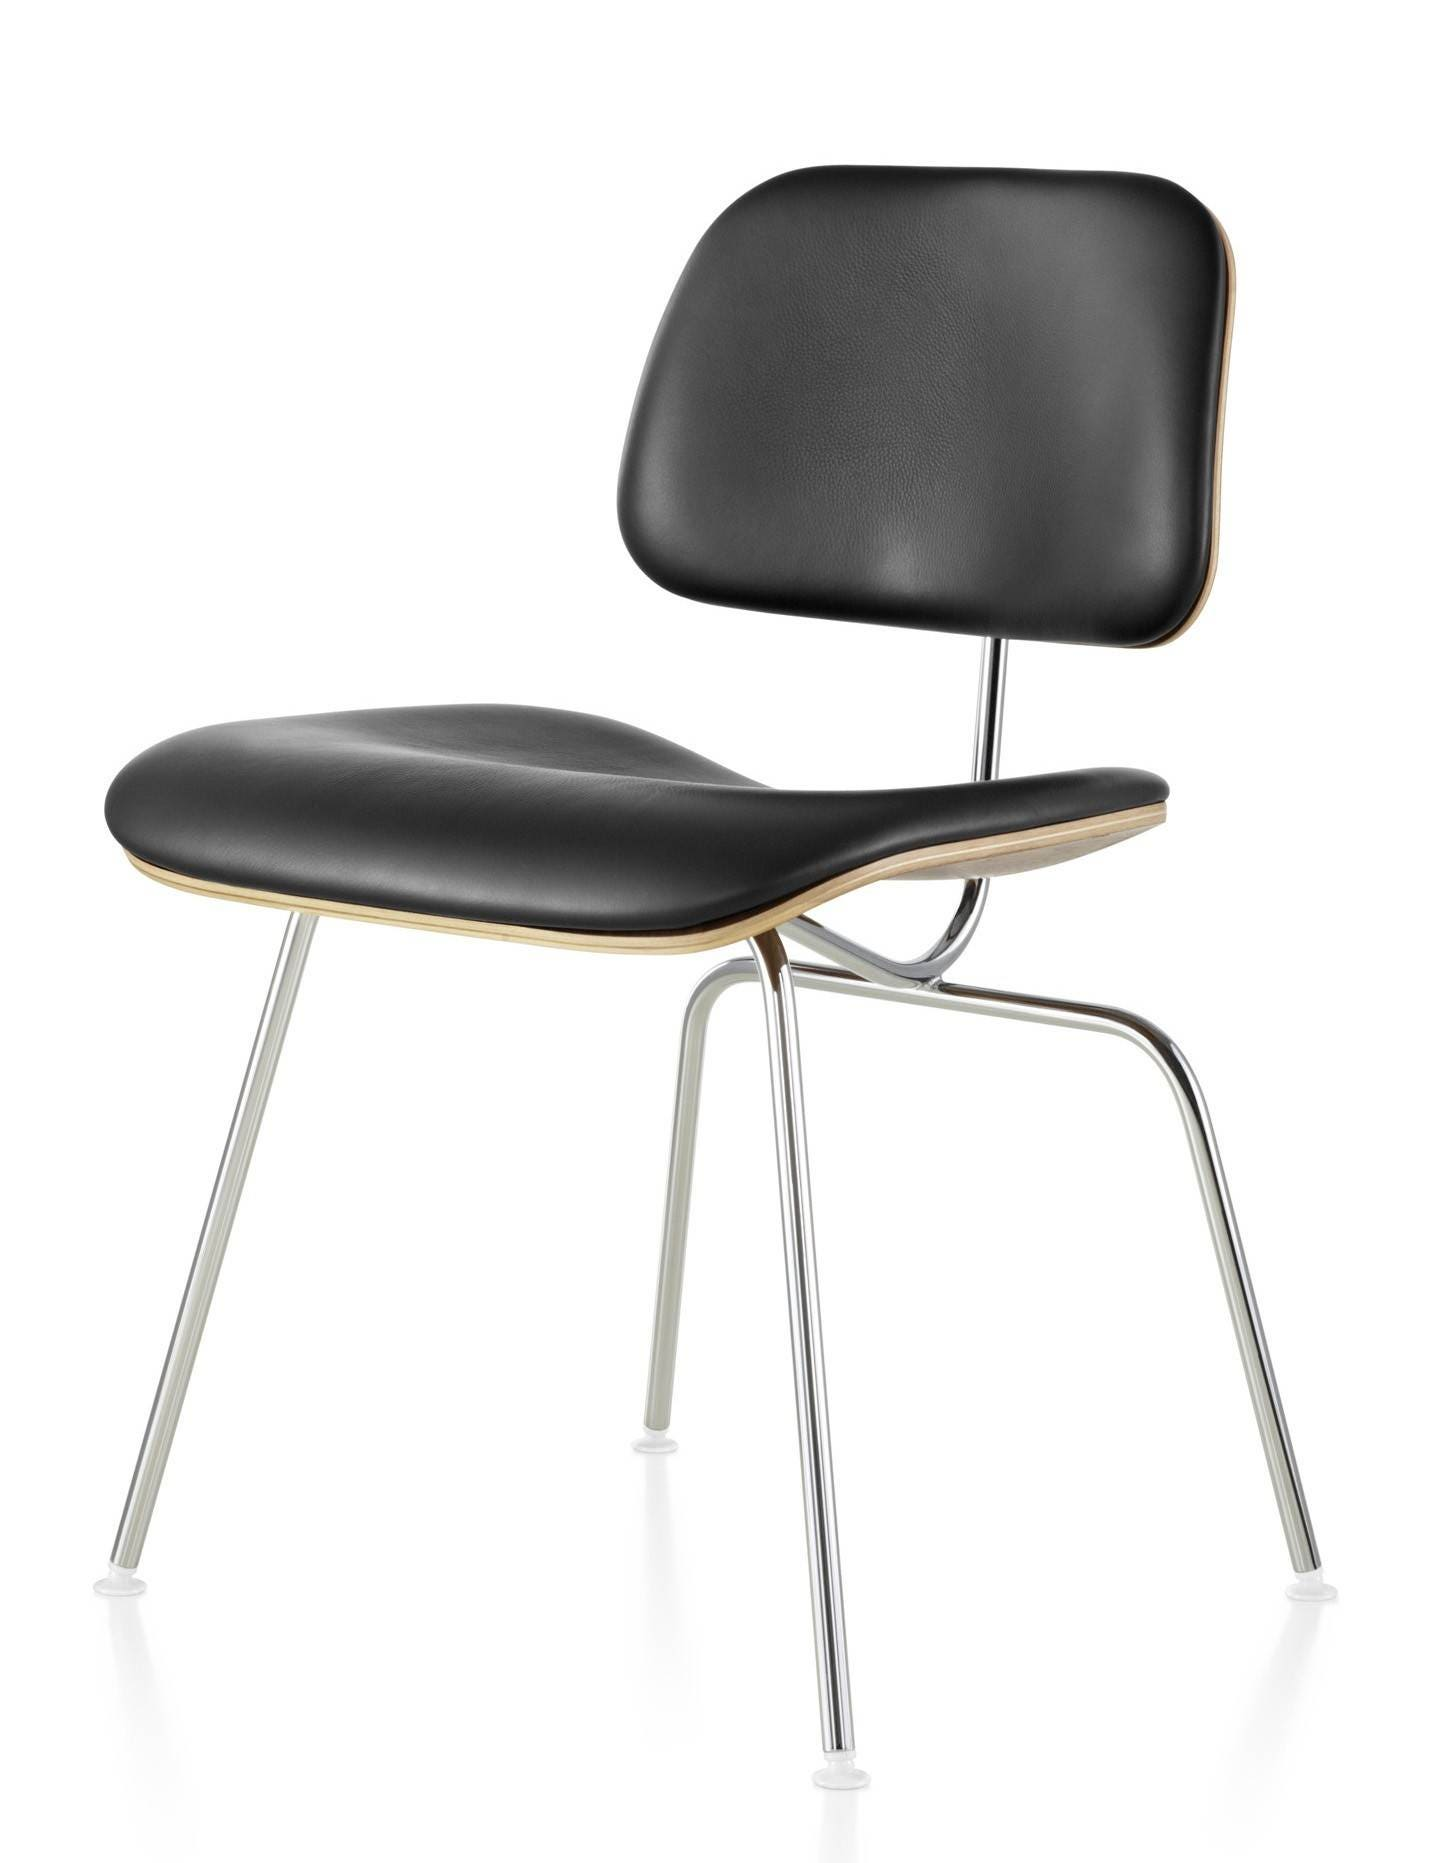 Magnificent Herman Miller Eames Molded Plywood Upholstered Dining Chair Metal Legs Pabps2019 Chair Design Images Pabps2019Com